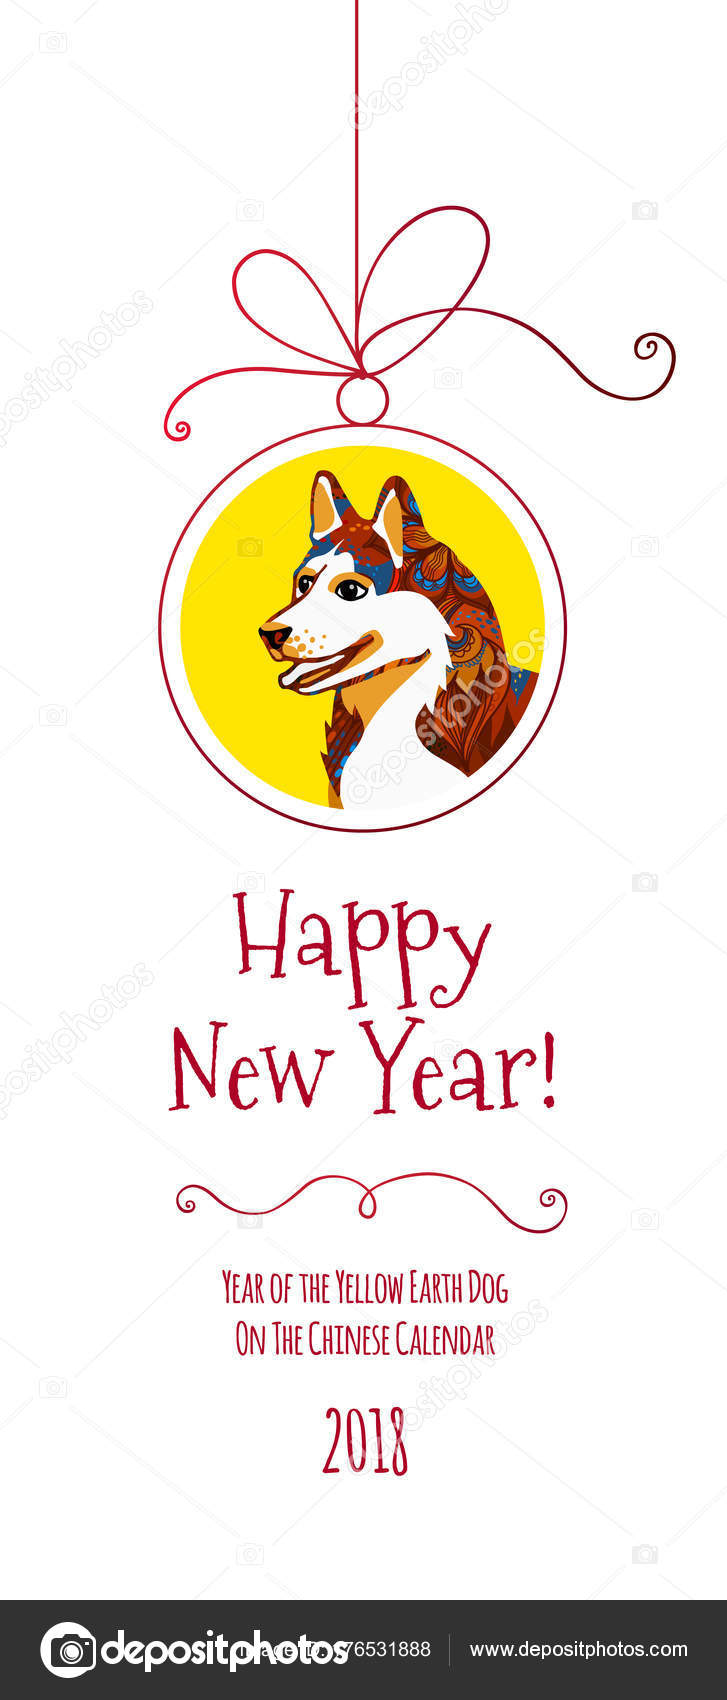 vector banner illustration dog symbol 2018 chinese calendar decoration traditional stock vector